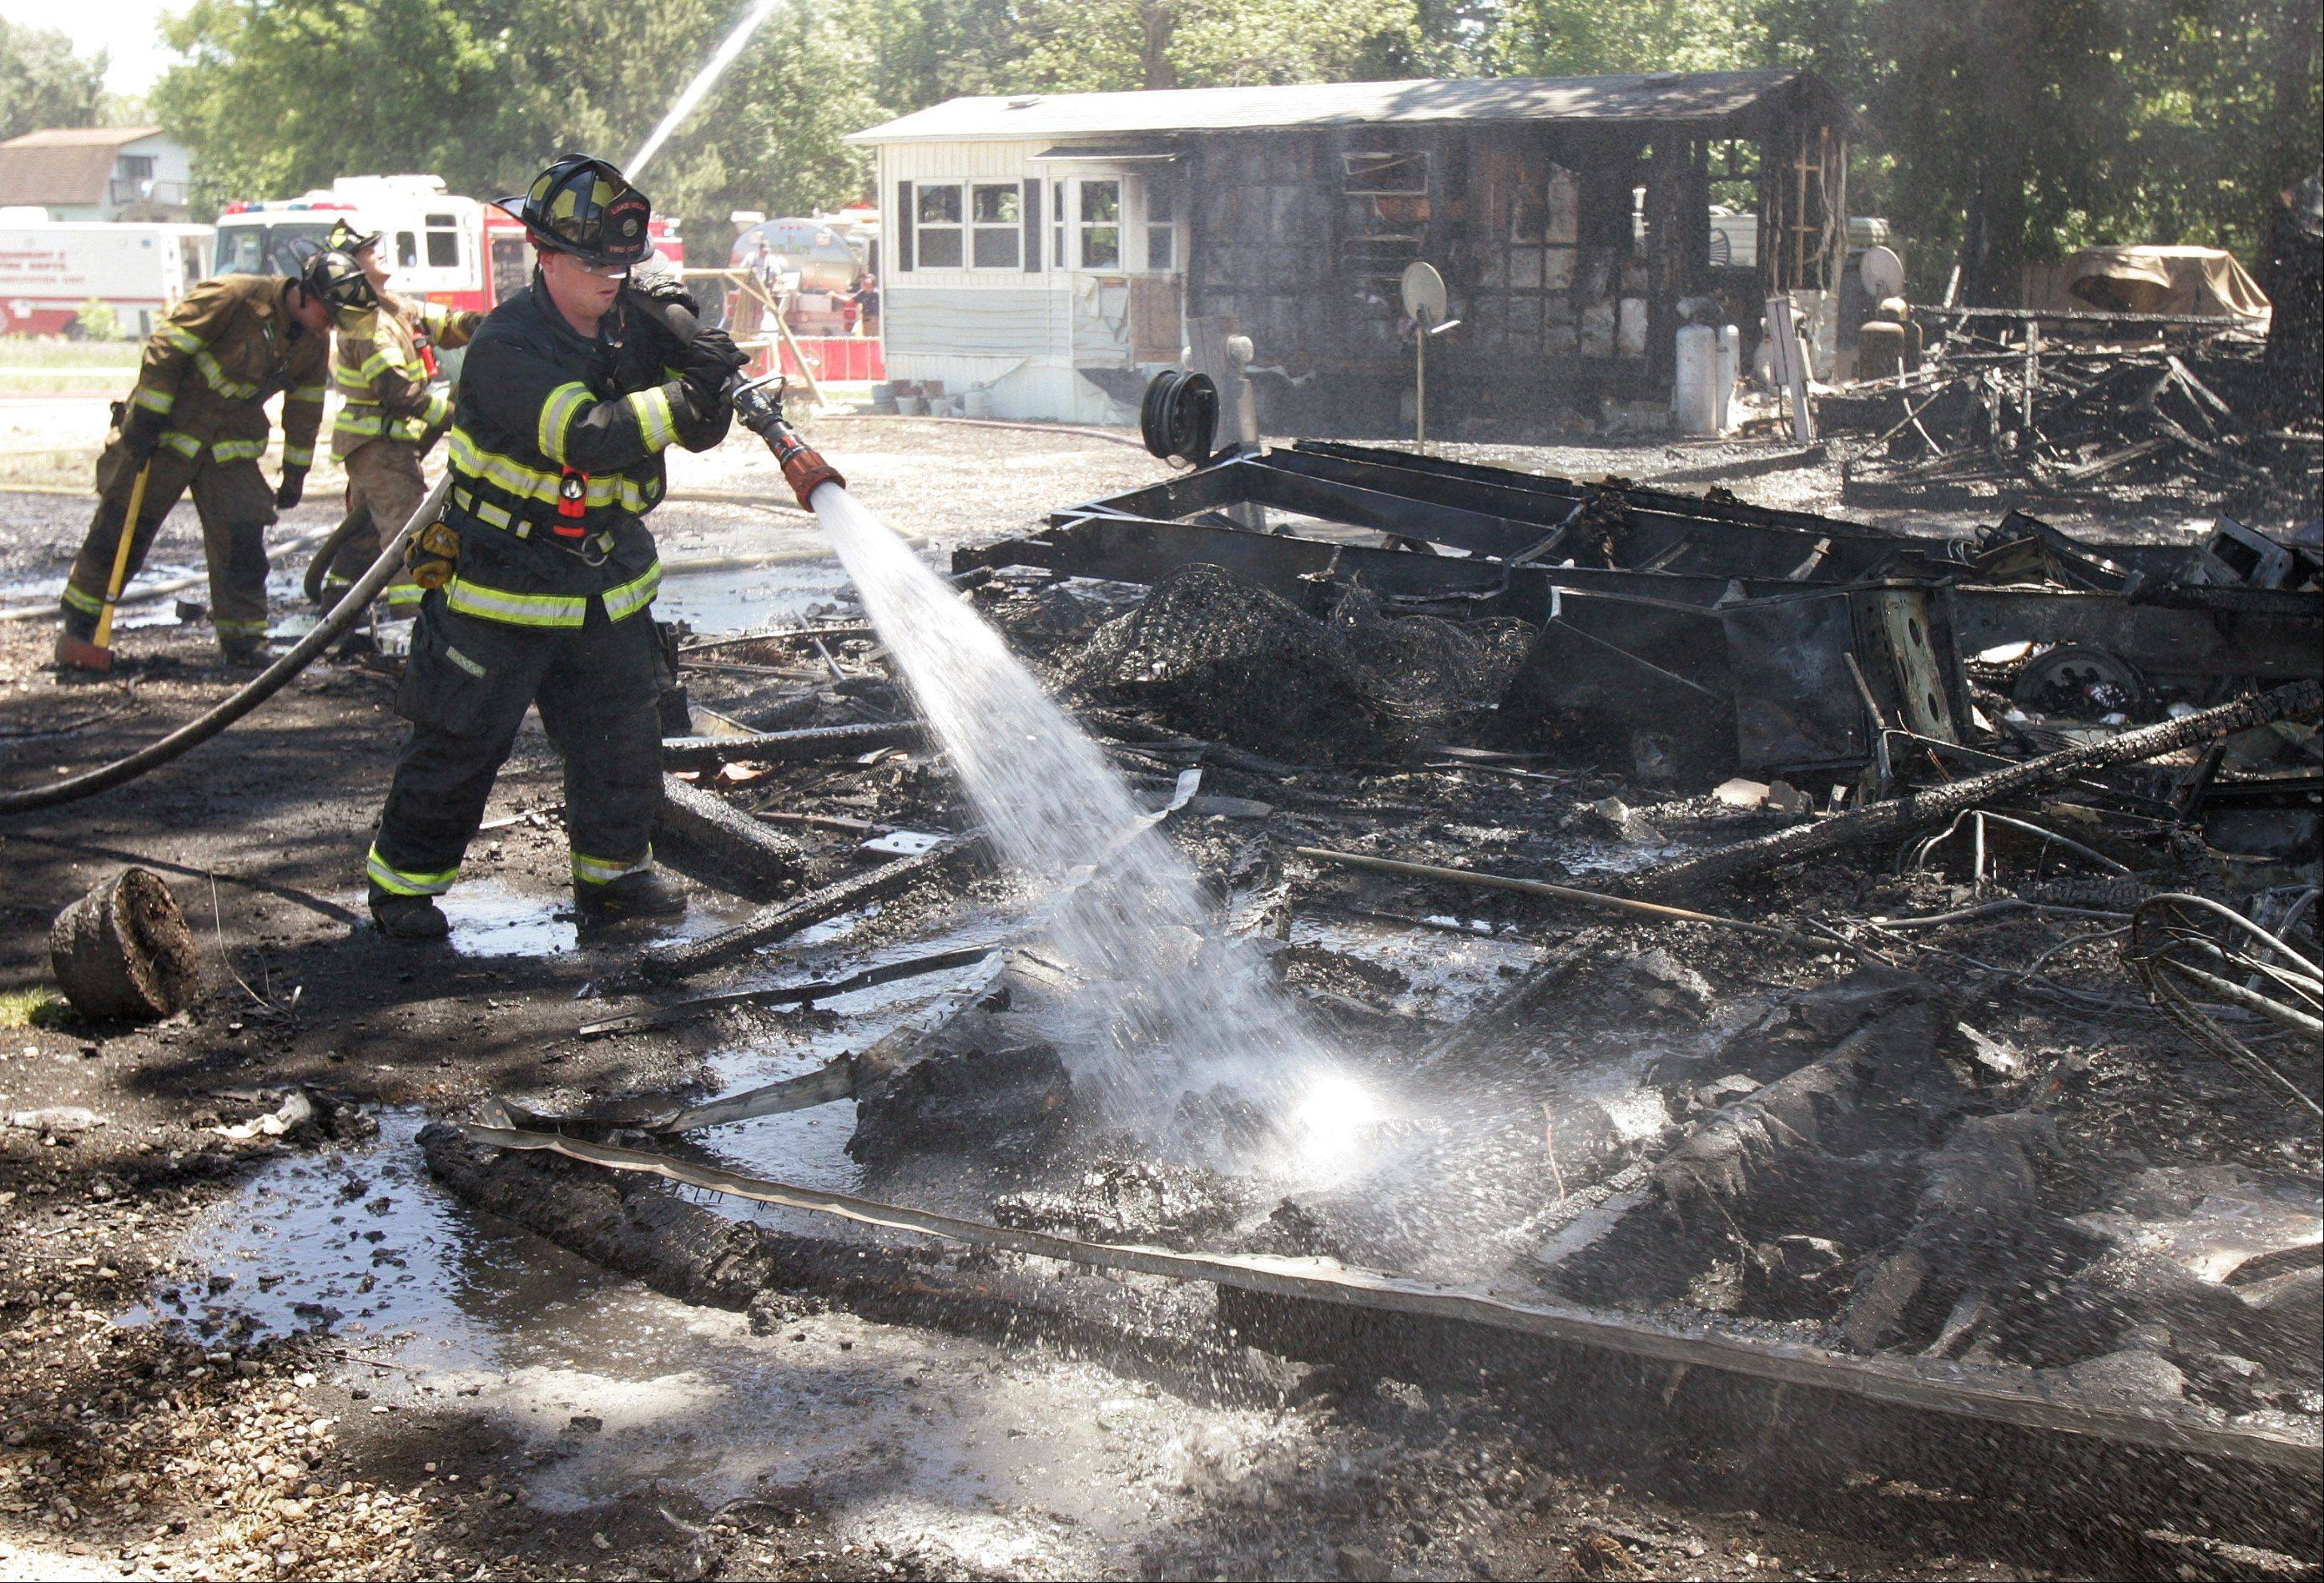 A Lake Villa firefighter sprays water on the remains of one mobile home as he joined other Lake County firefighters who battled a fire involving multiple mobile homes in Grass Lake Marina & R.V. Park Tuesday near Antioch. Fire departments from Antioch, Lake Villa, Fox Lake and Gurnee assisted in the multiple alarm fire.